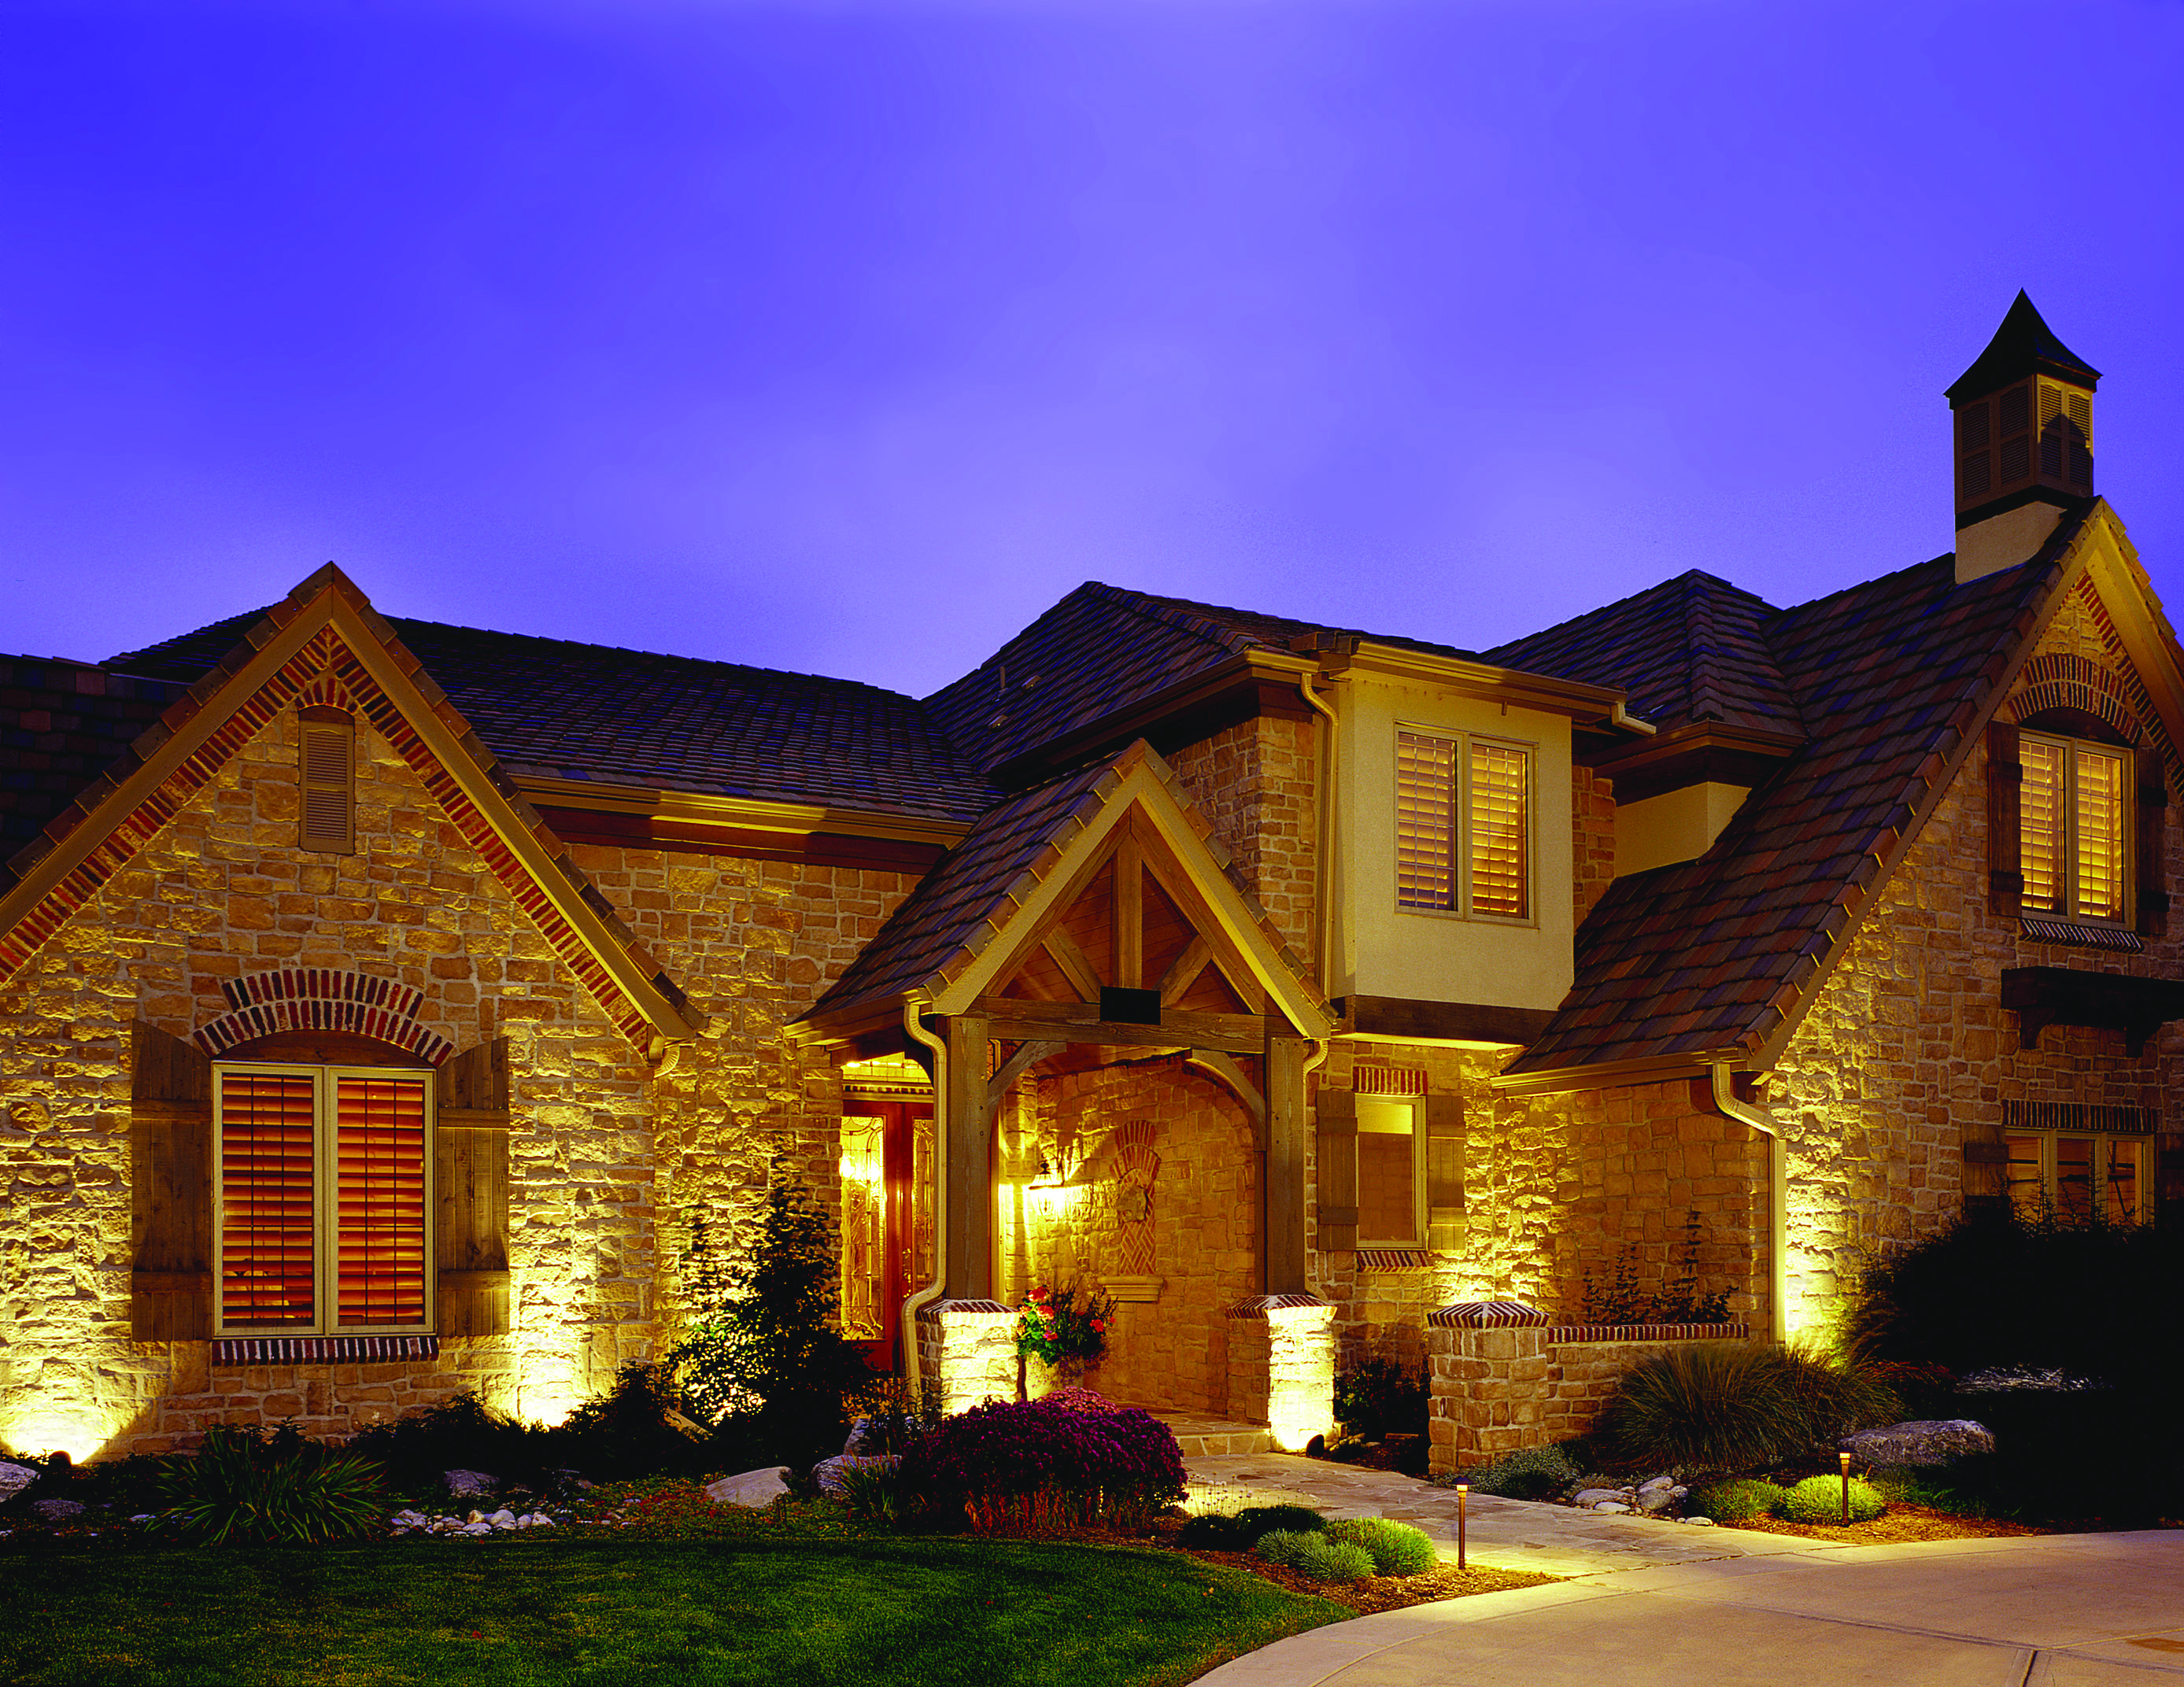 Outdoor Lighting for your home